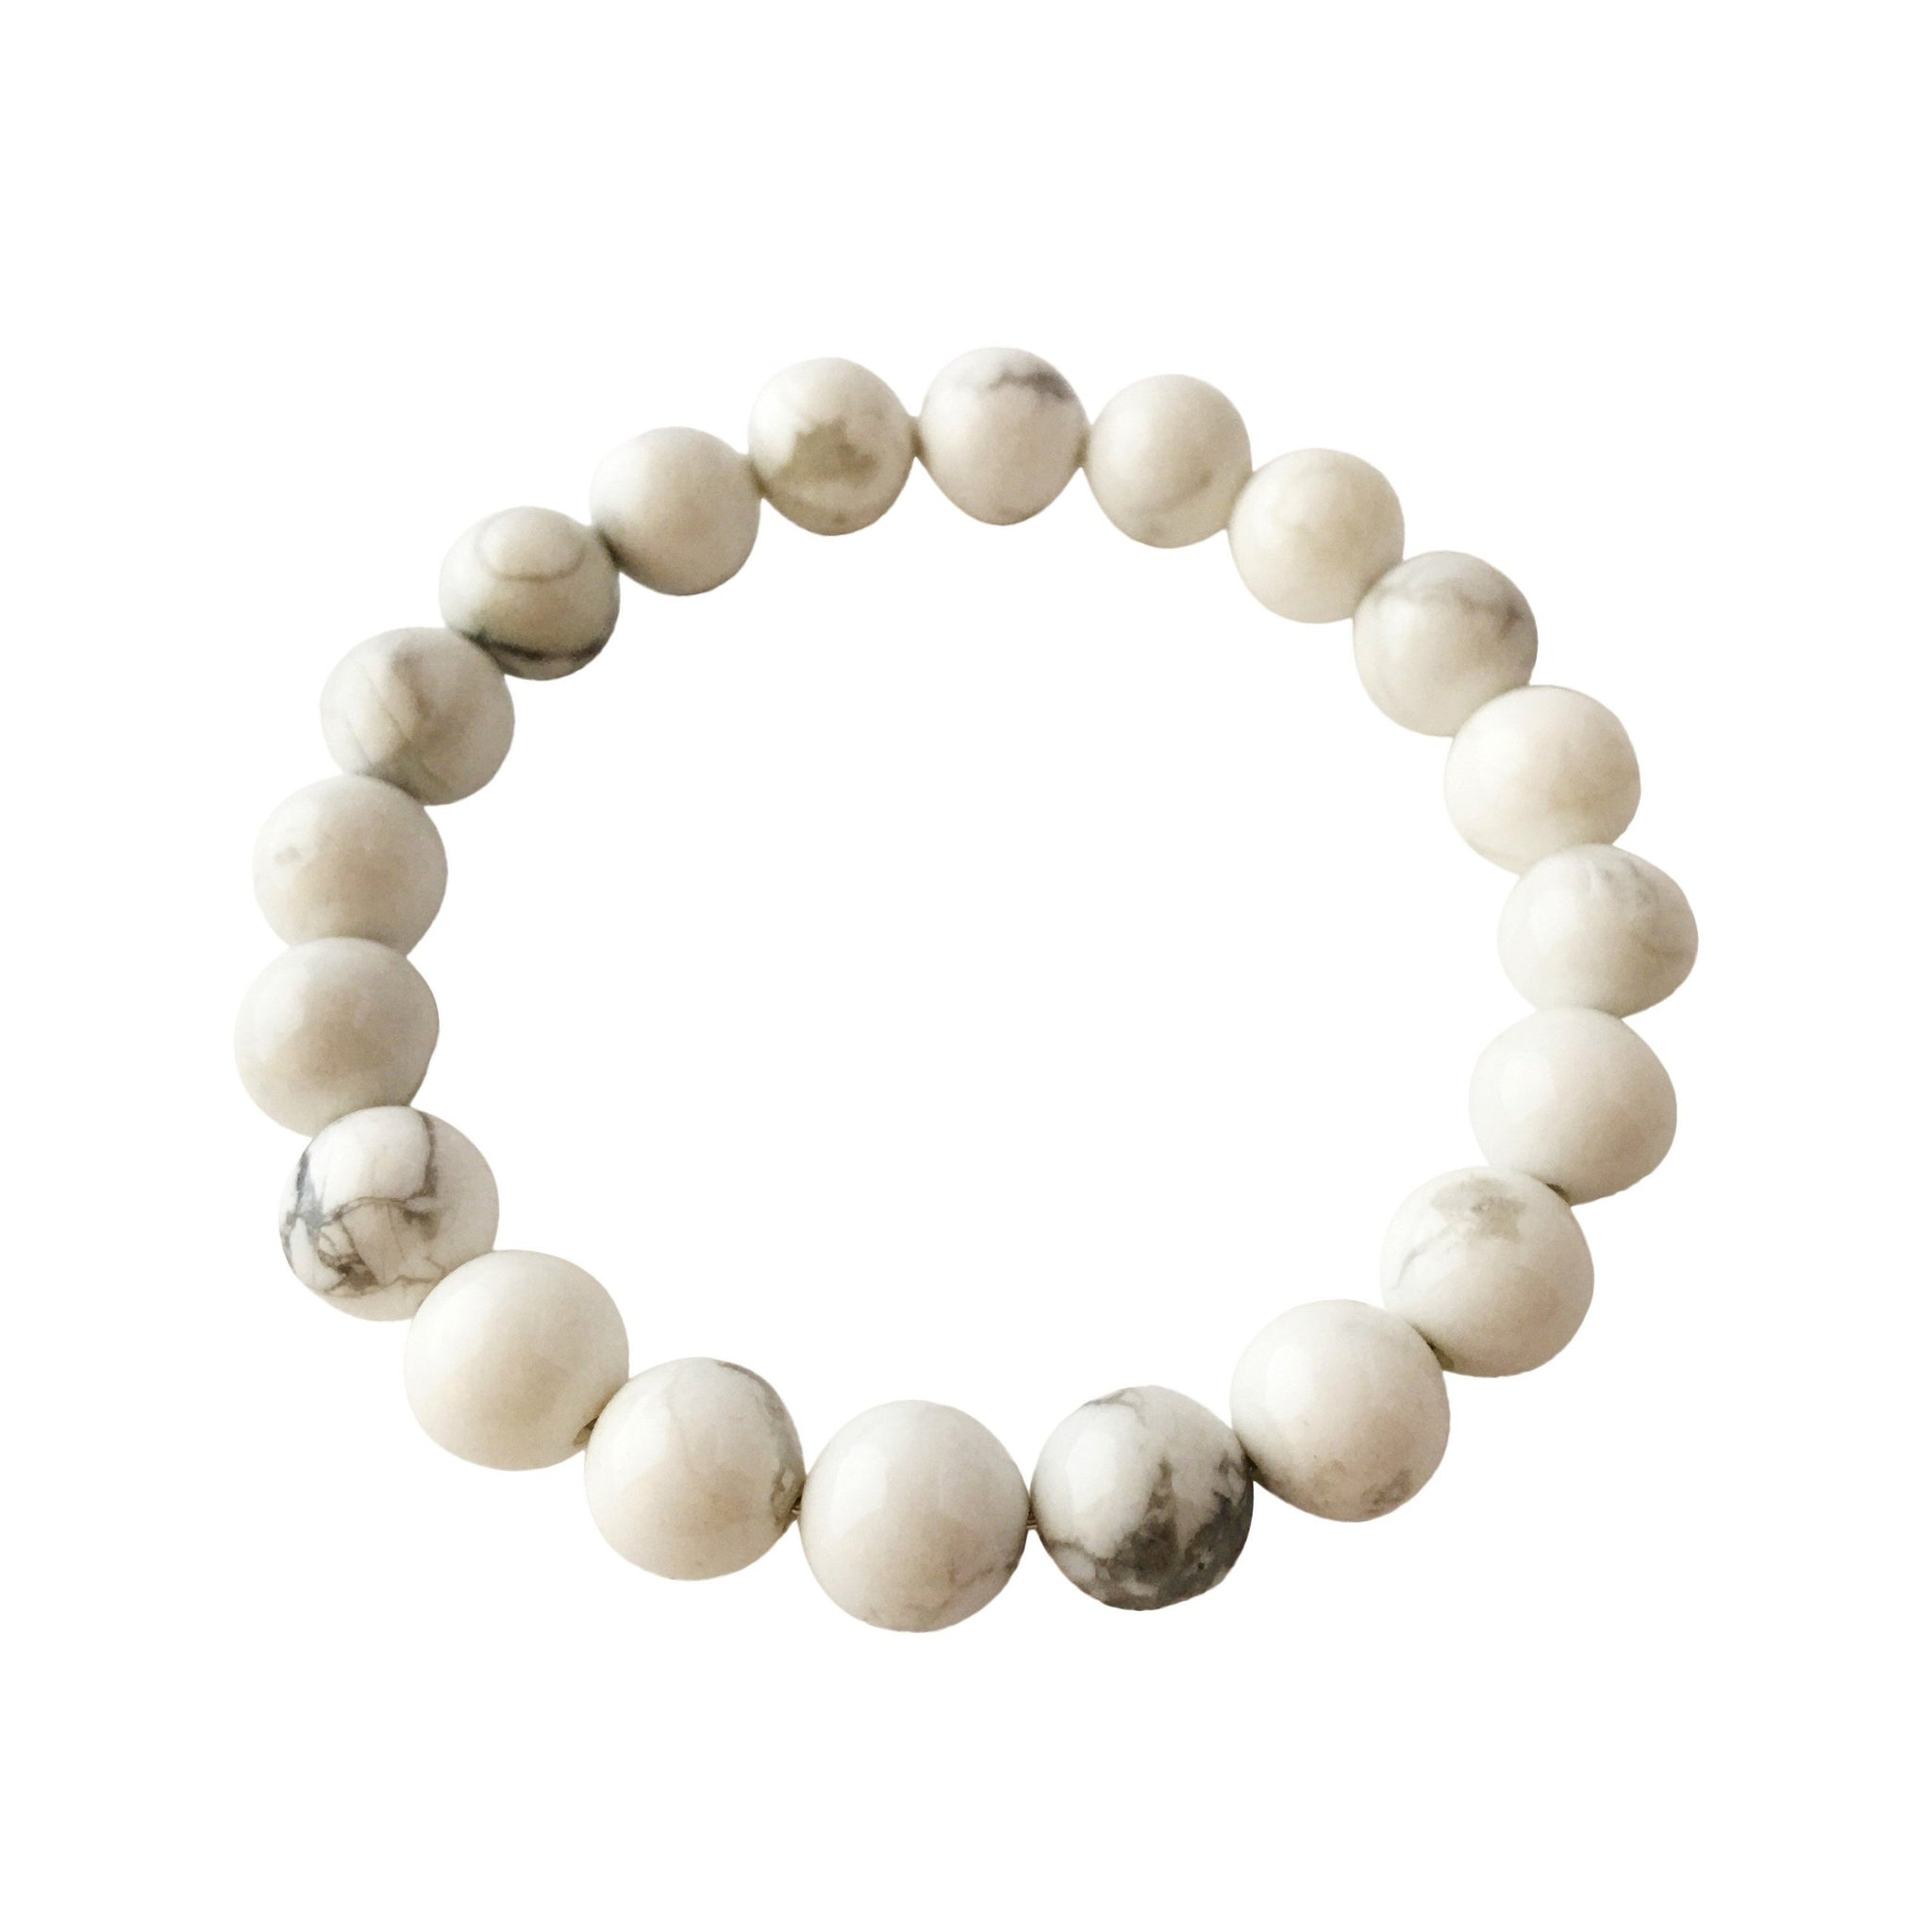 8mm White Howlite Bracelet